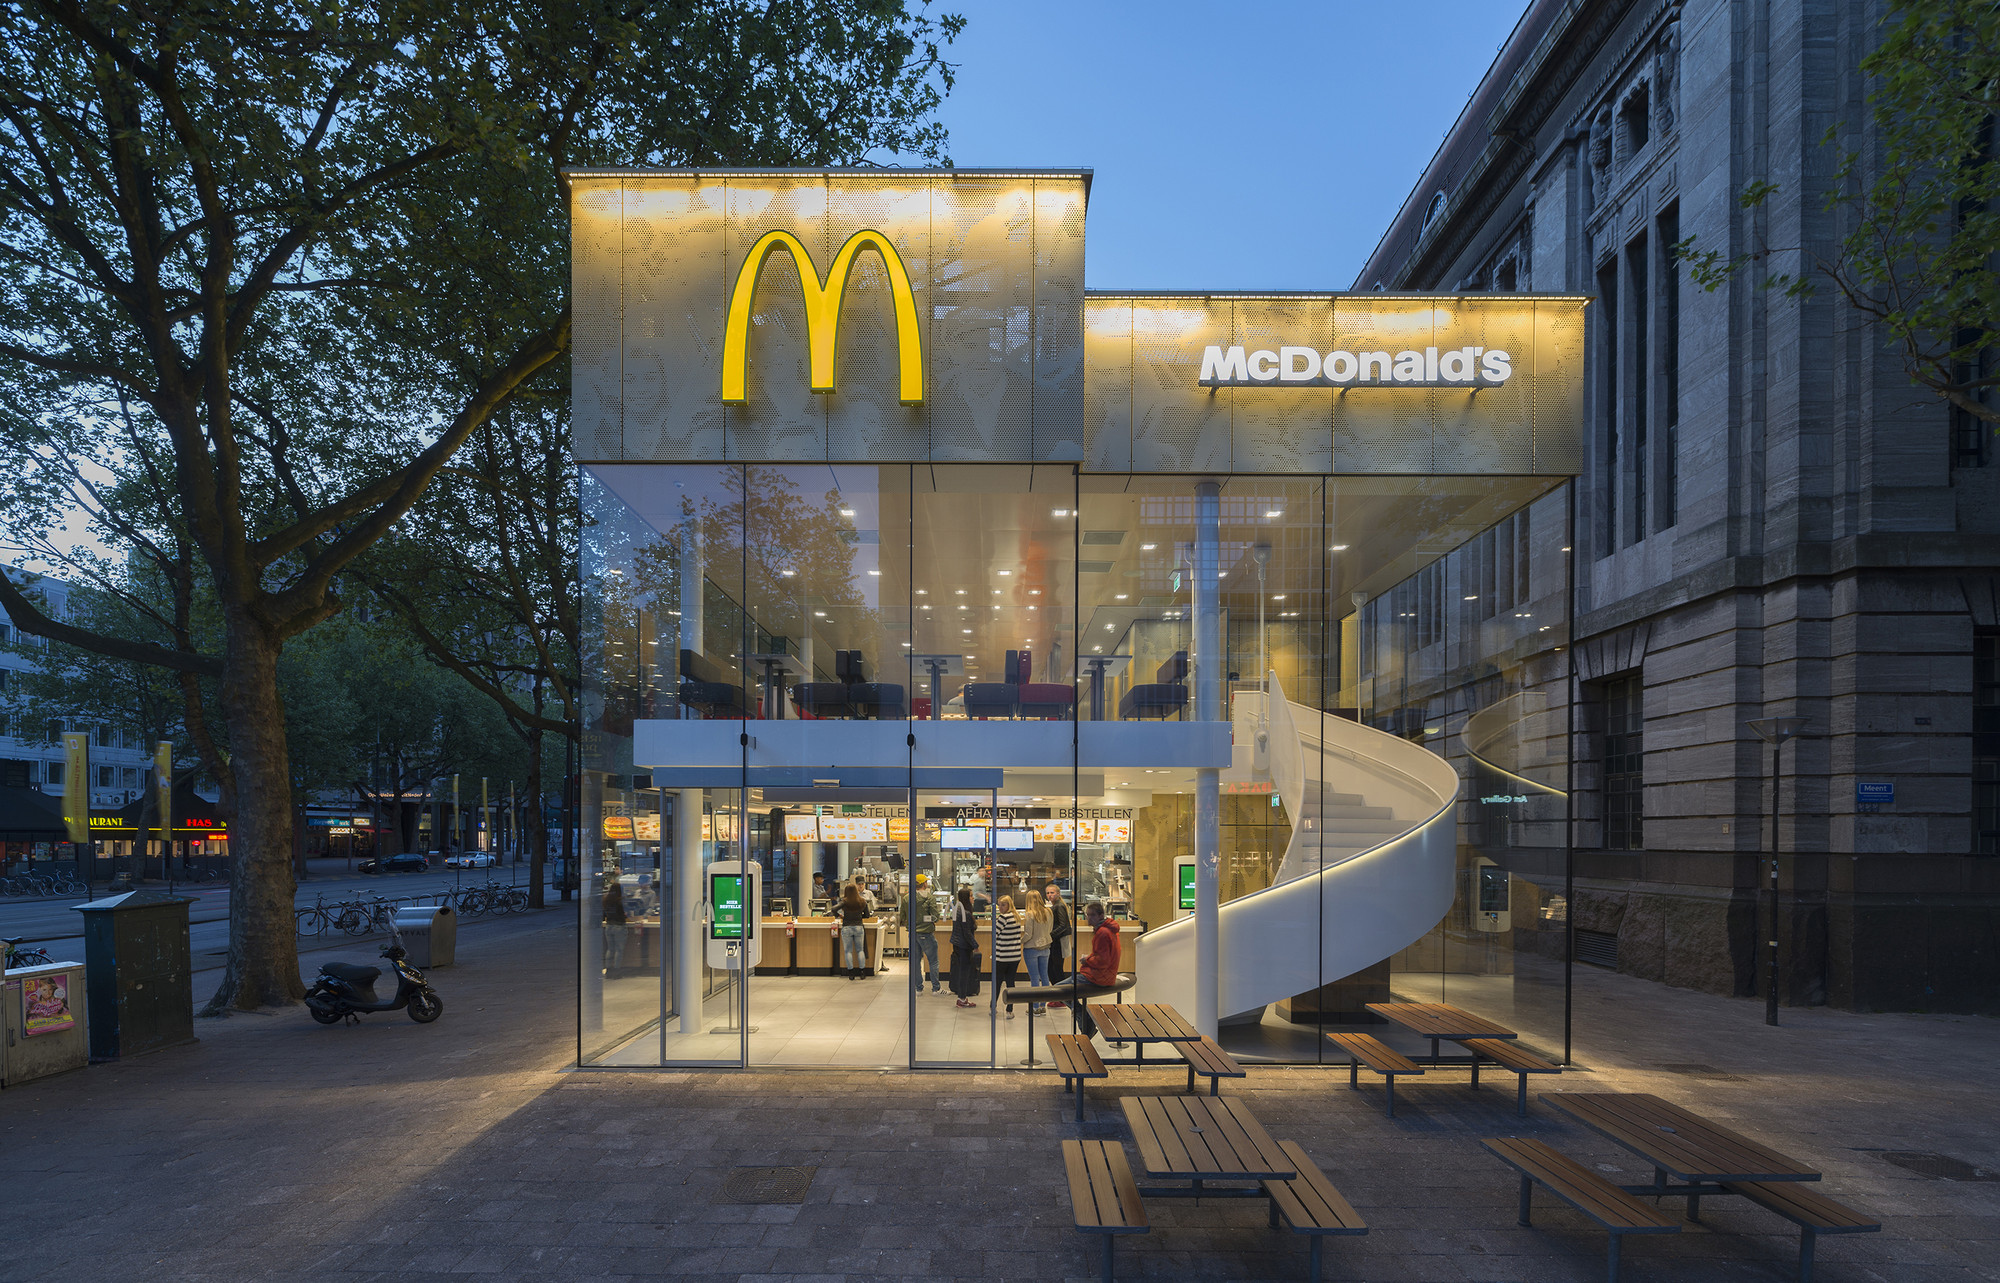 Pabellón McDonald's en Coolsingel / mei architects and planners